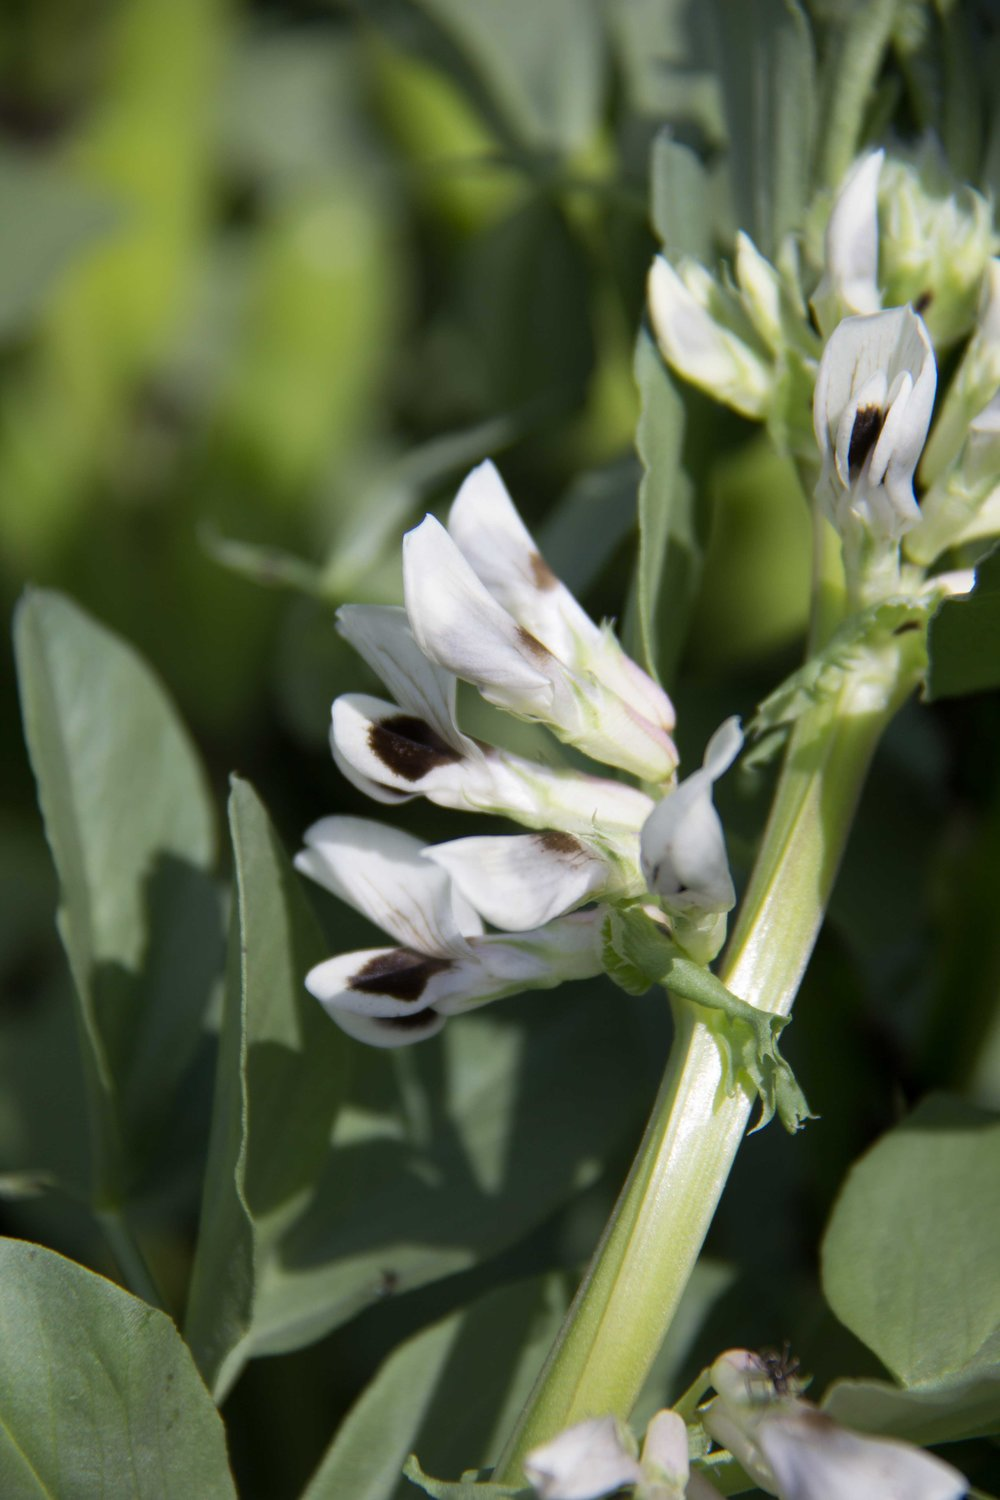 Fava bean (Lac-St-Jean) in flower